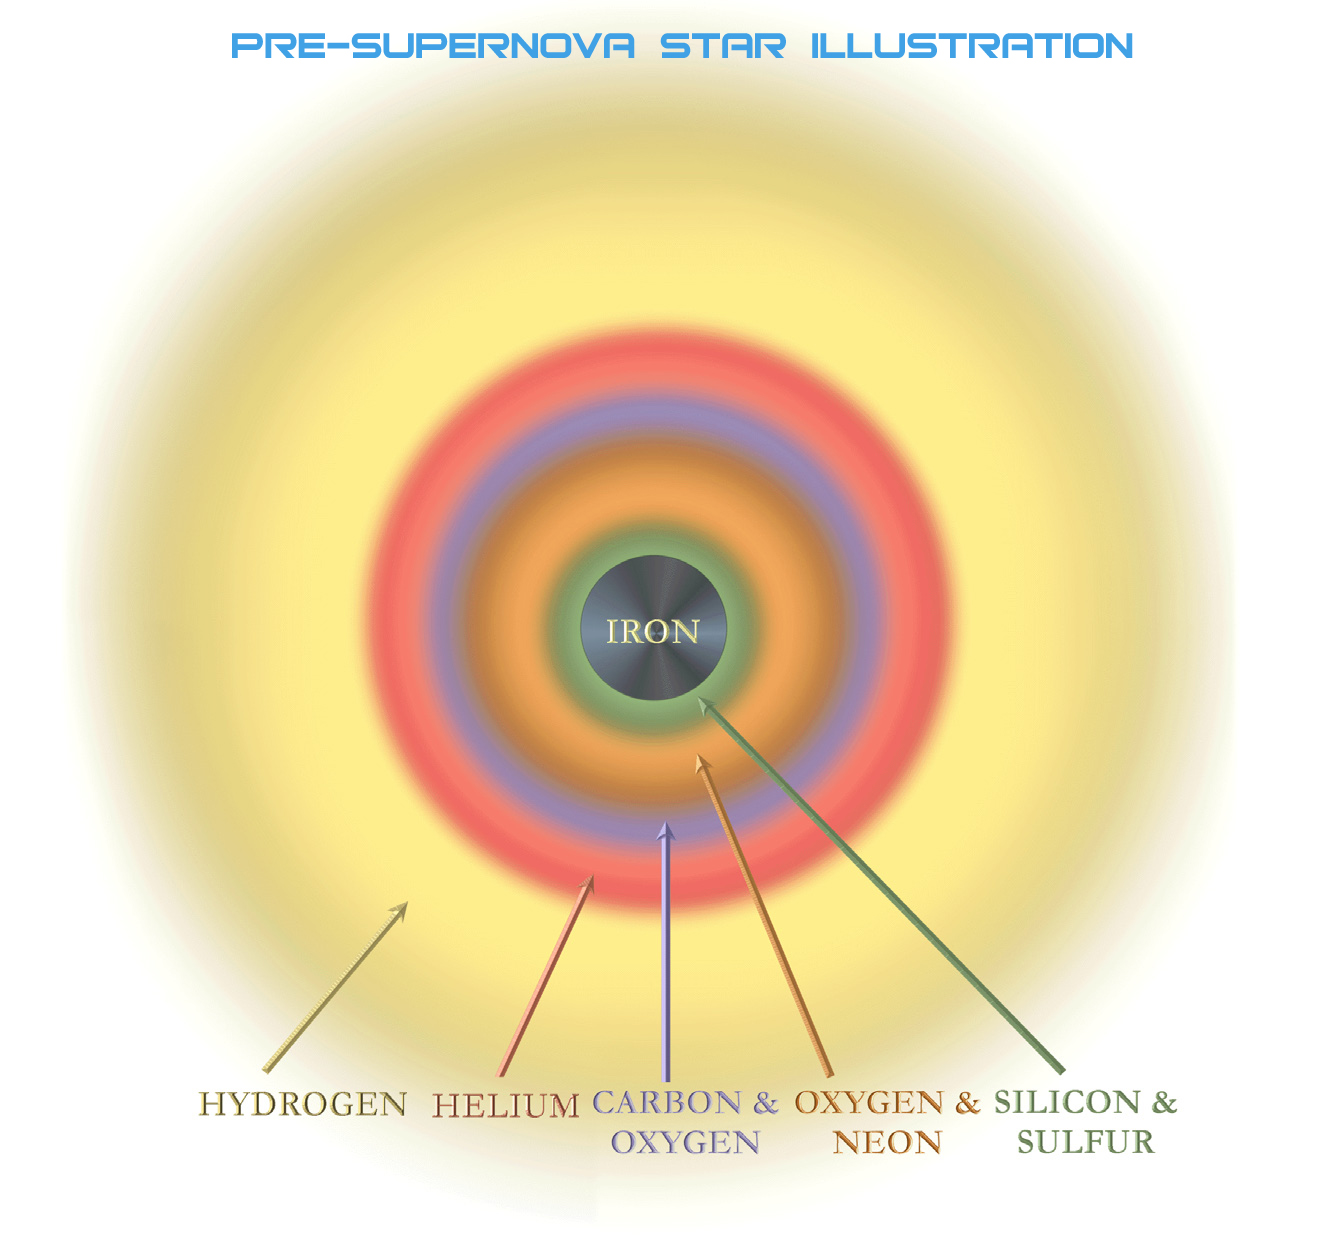 Pre-supernova star Illustration